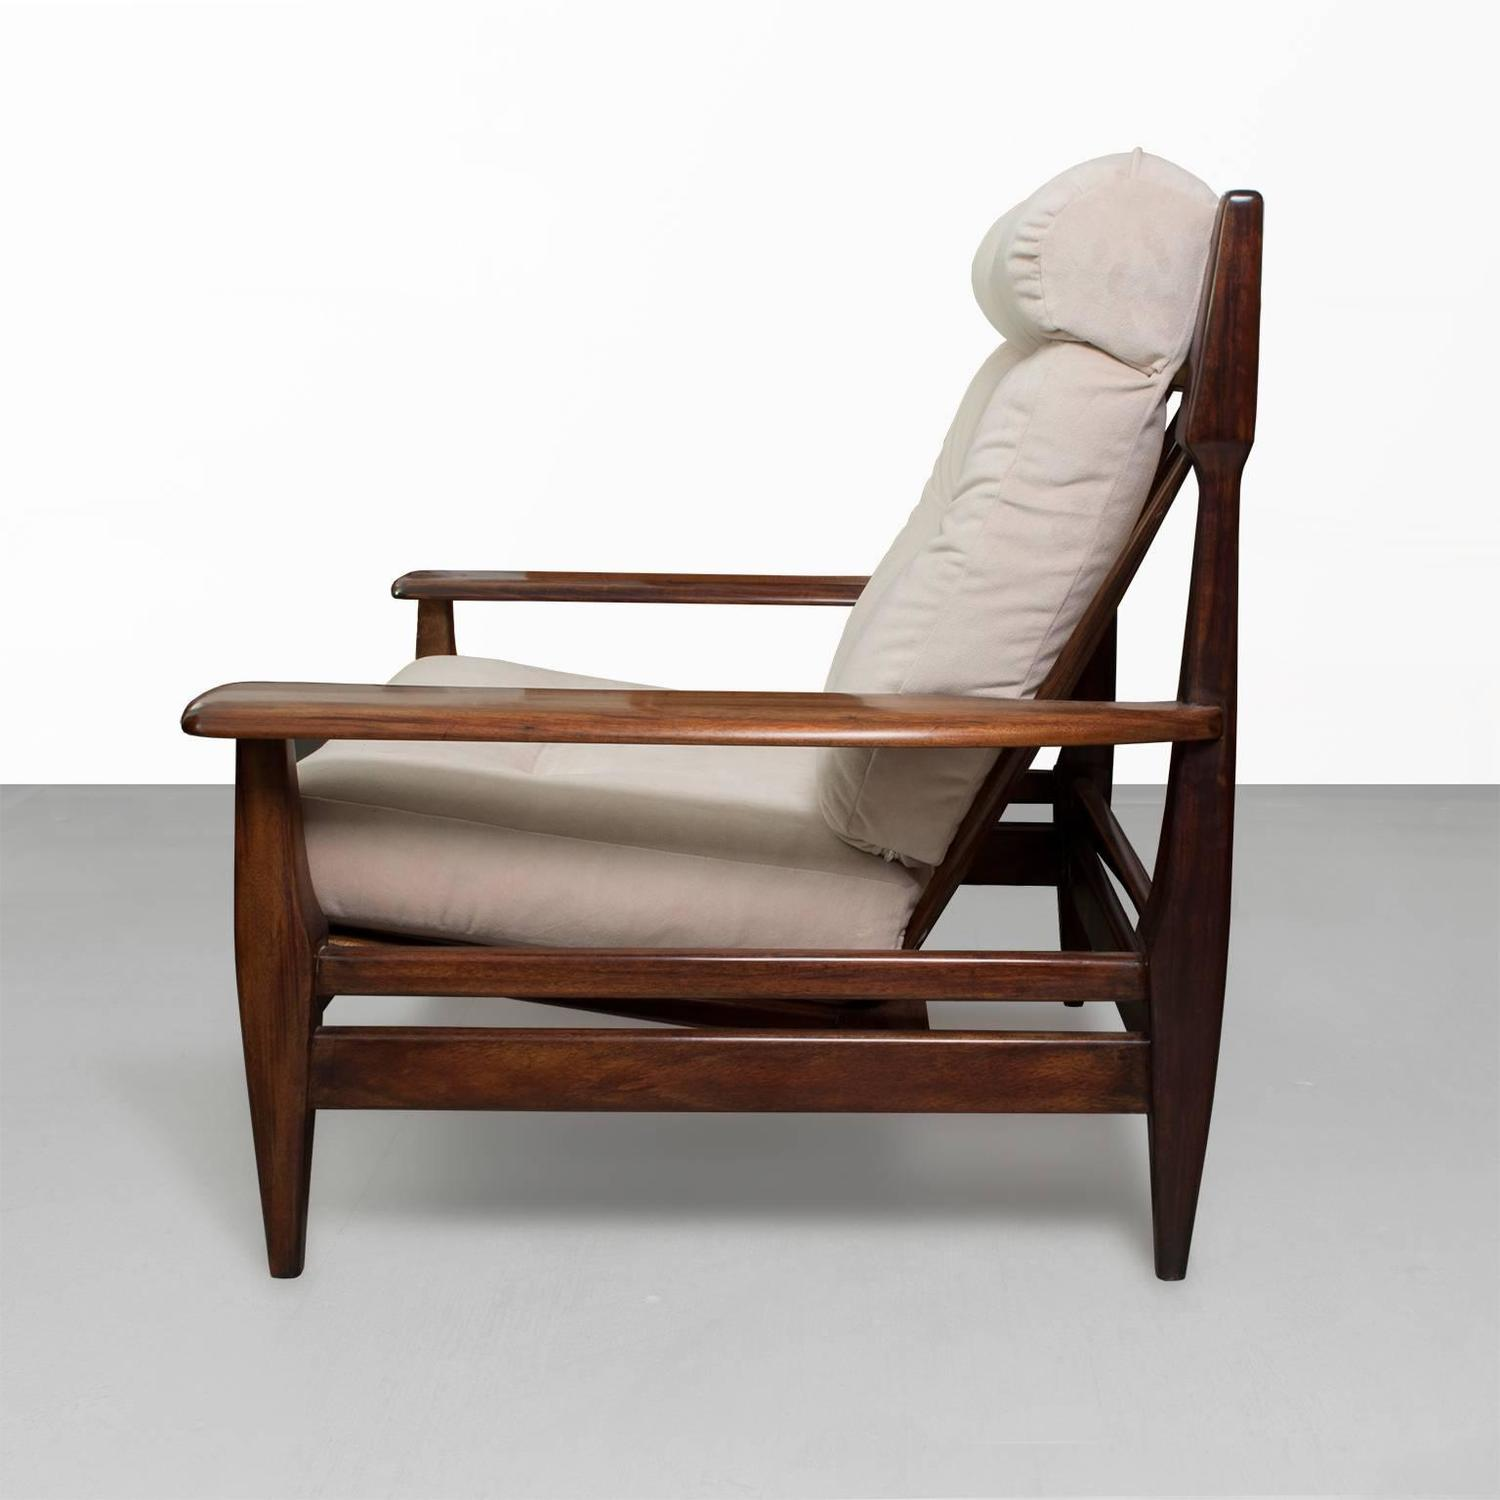 Pair of large mid century modern brazilian carved solid rosewood lounge chairs at 1stdibs - Brazilian mid century modern furniture ...